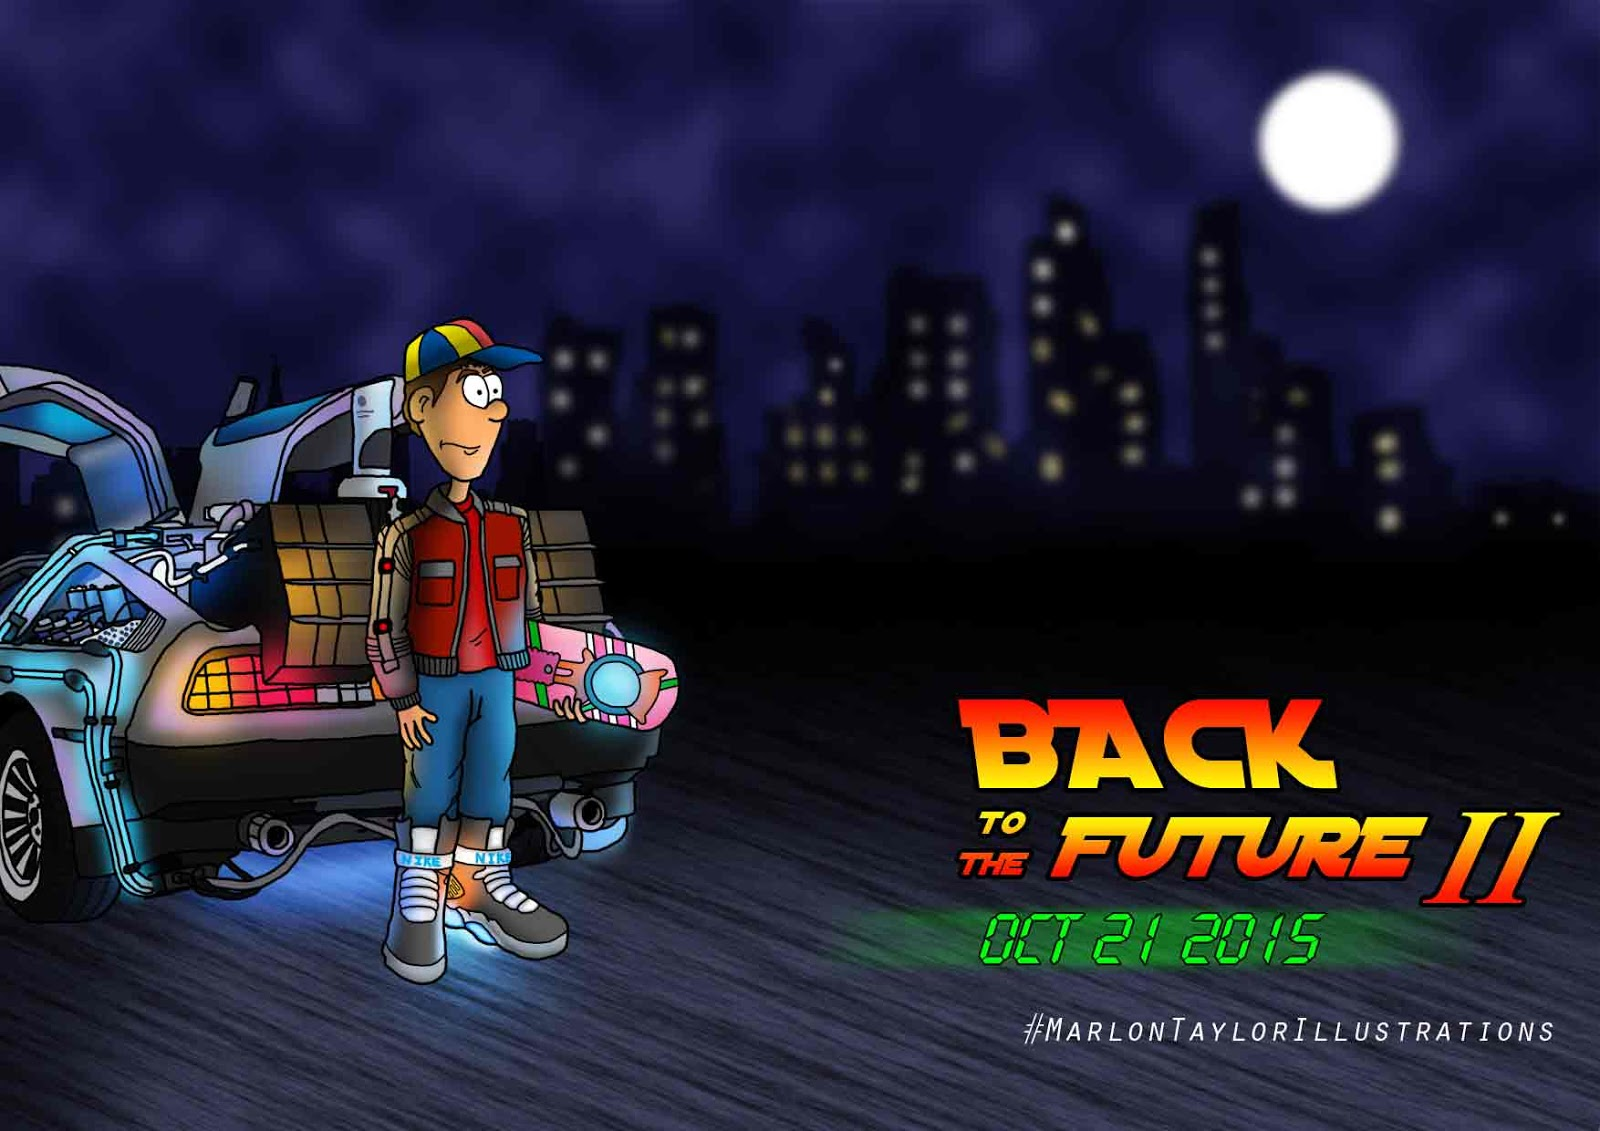 Brown travel into in back to the future 2 the date is oct 21st 2015